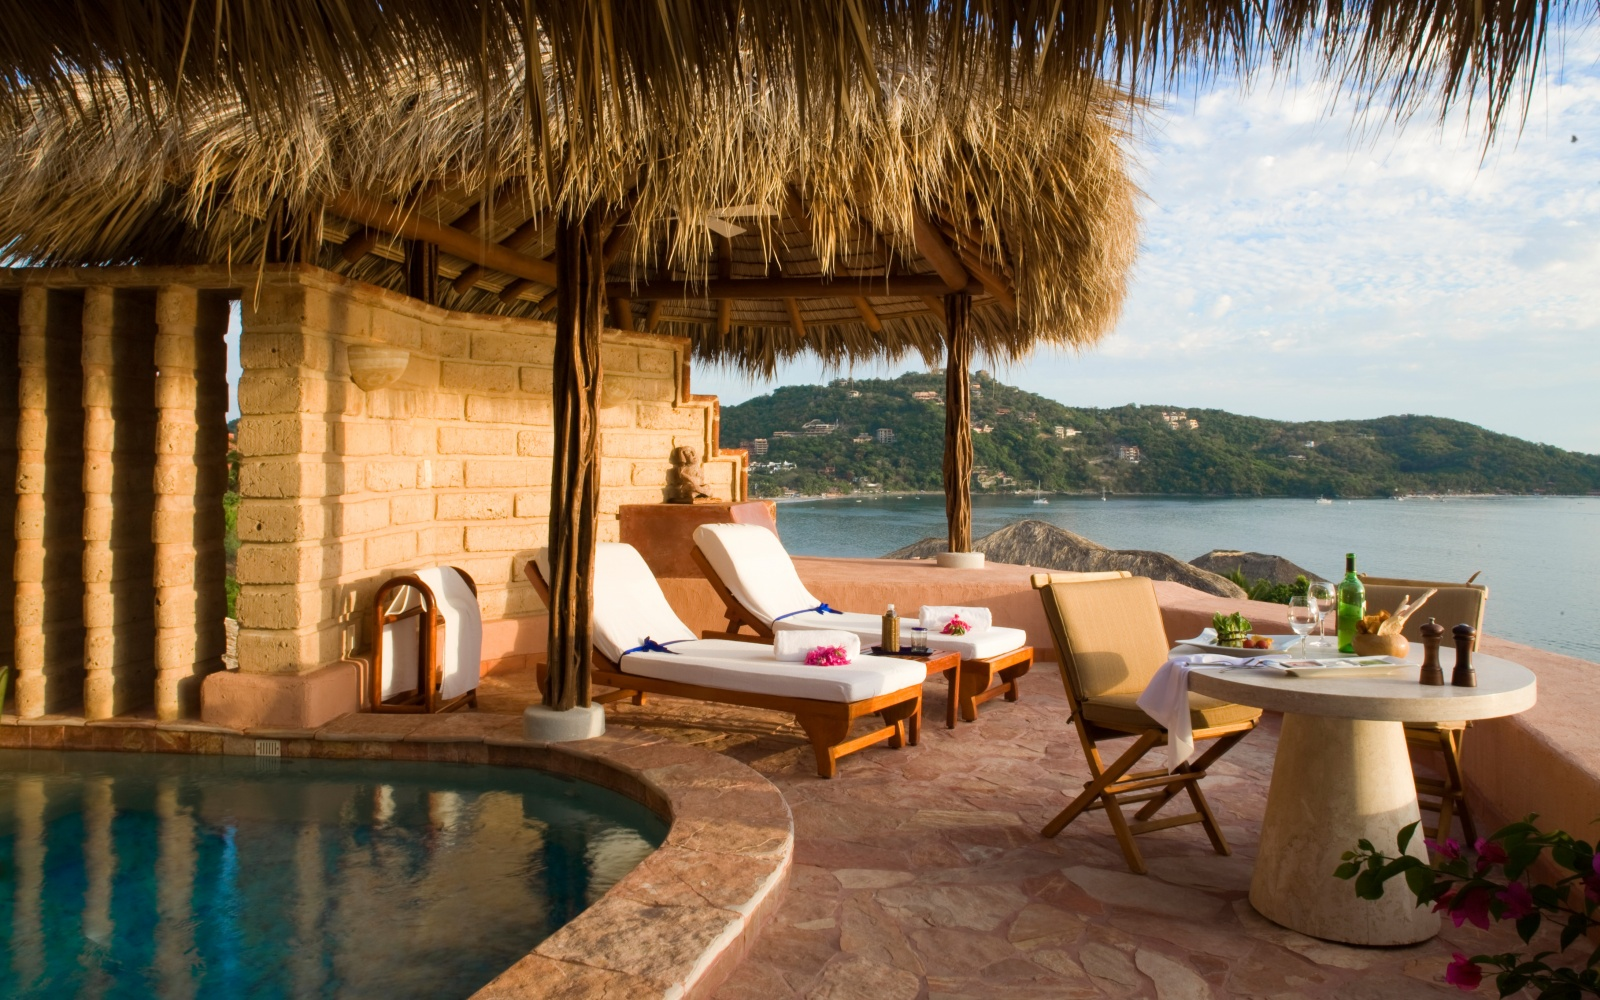 guest pool at La Casa Que Canta, Zihuatanejo Mexico